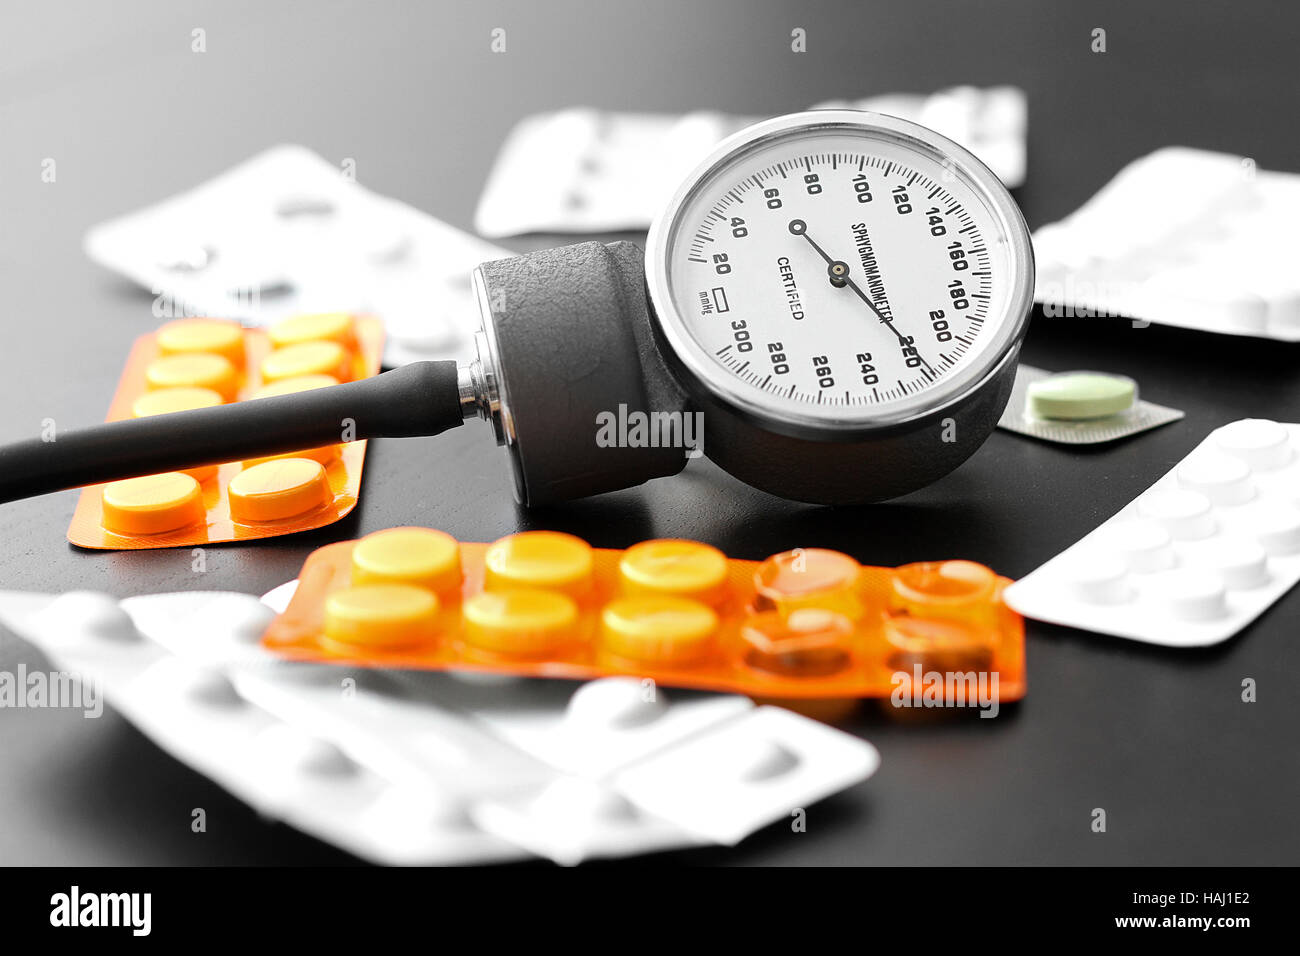 blood pressure meter and pills on the table - Stock Image